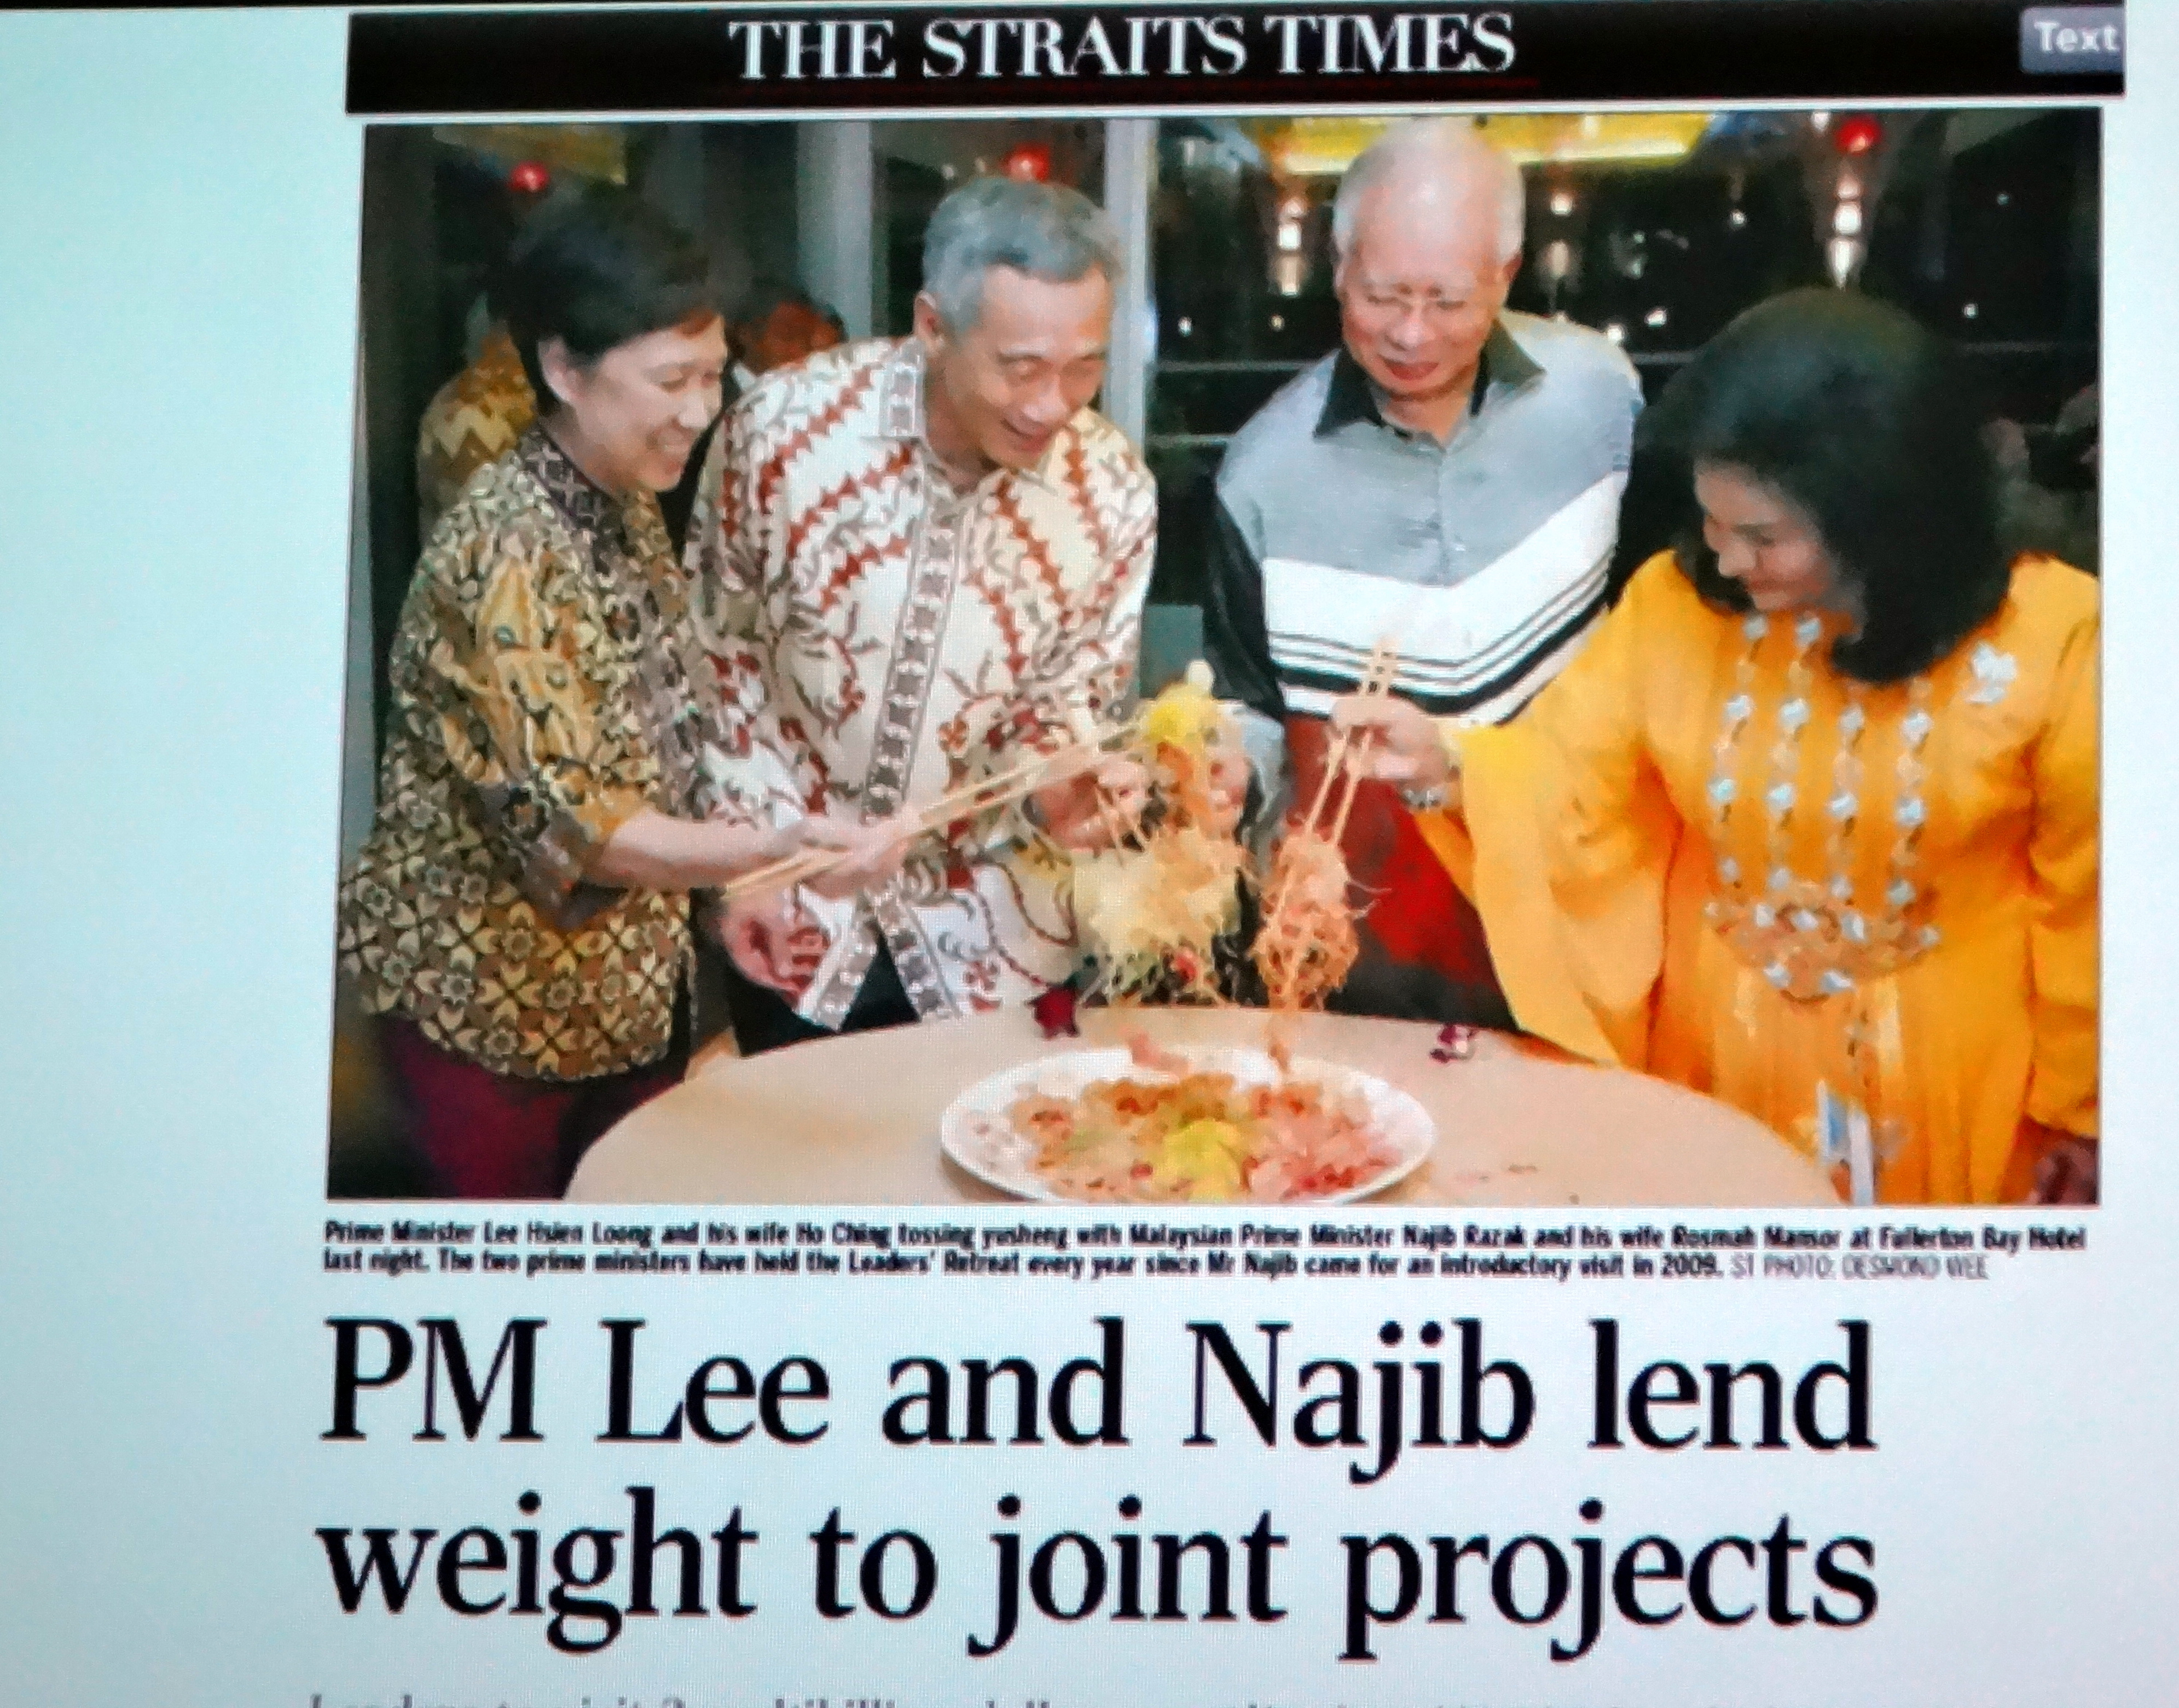 PM Lee and Najib lend weight to joint projects